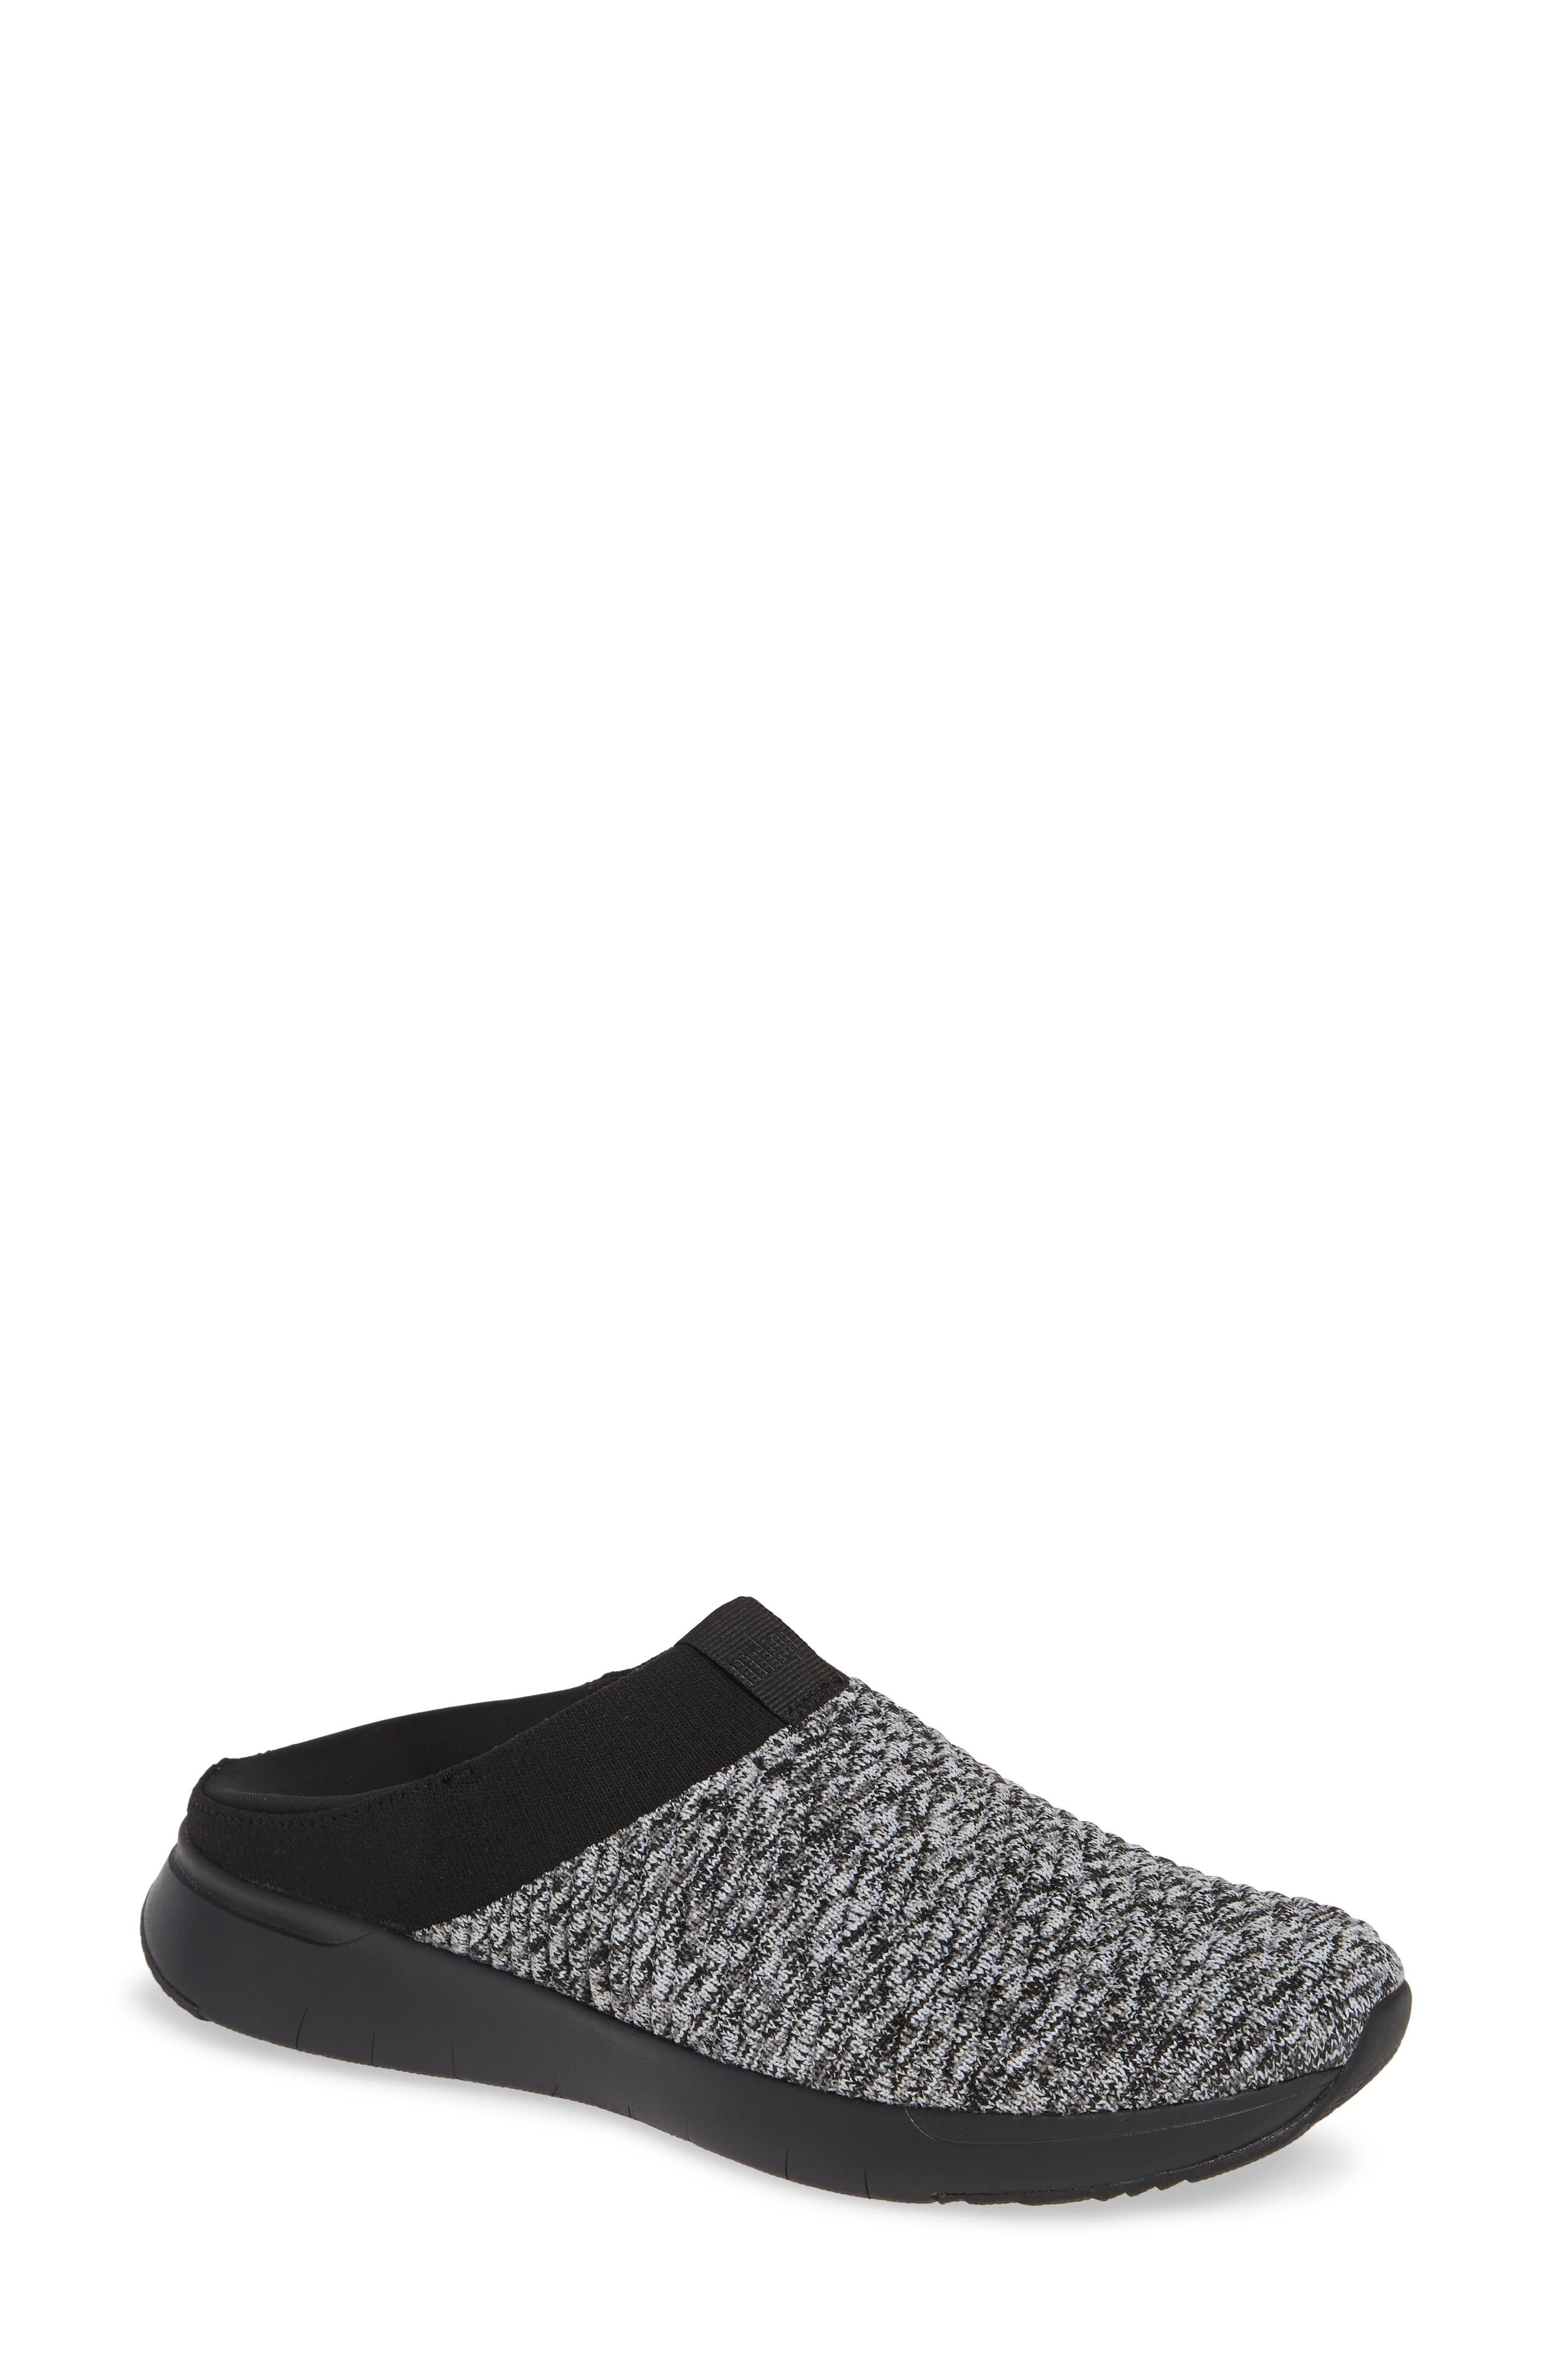 Artknit<sup>™</sup> Convertible Slip-On Sneaker,                             Main thumbnail 1, color,                             BLACK MIX